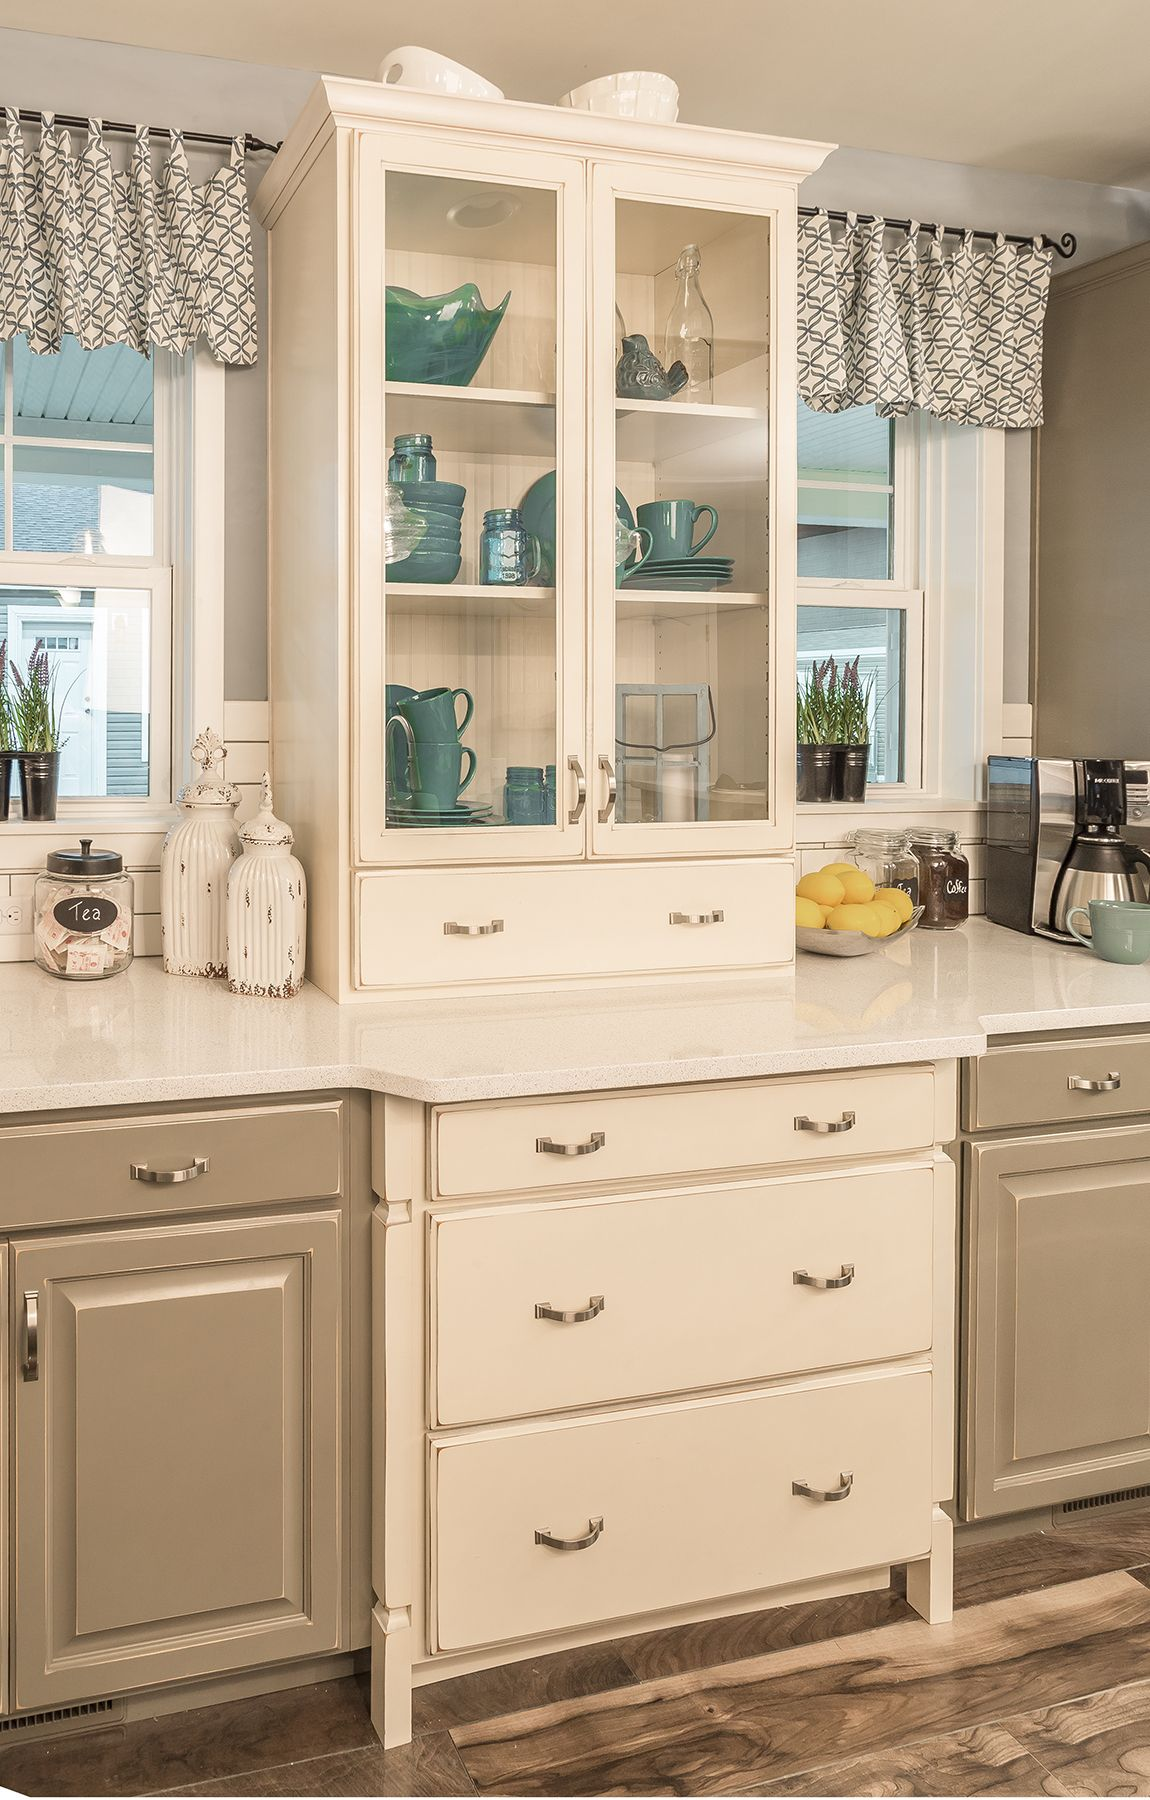 Furniturestyle builtin china cabinet fun cottage accent piece